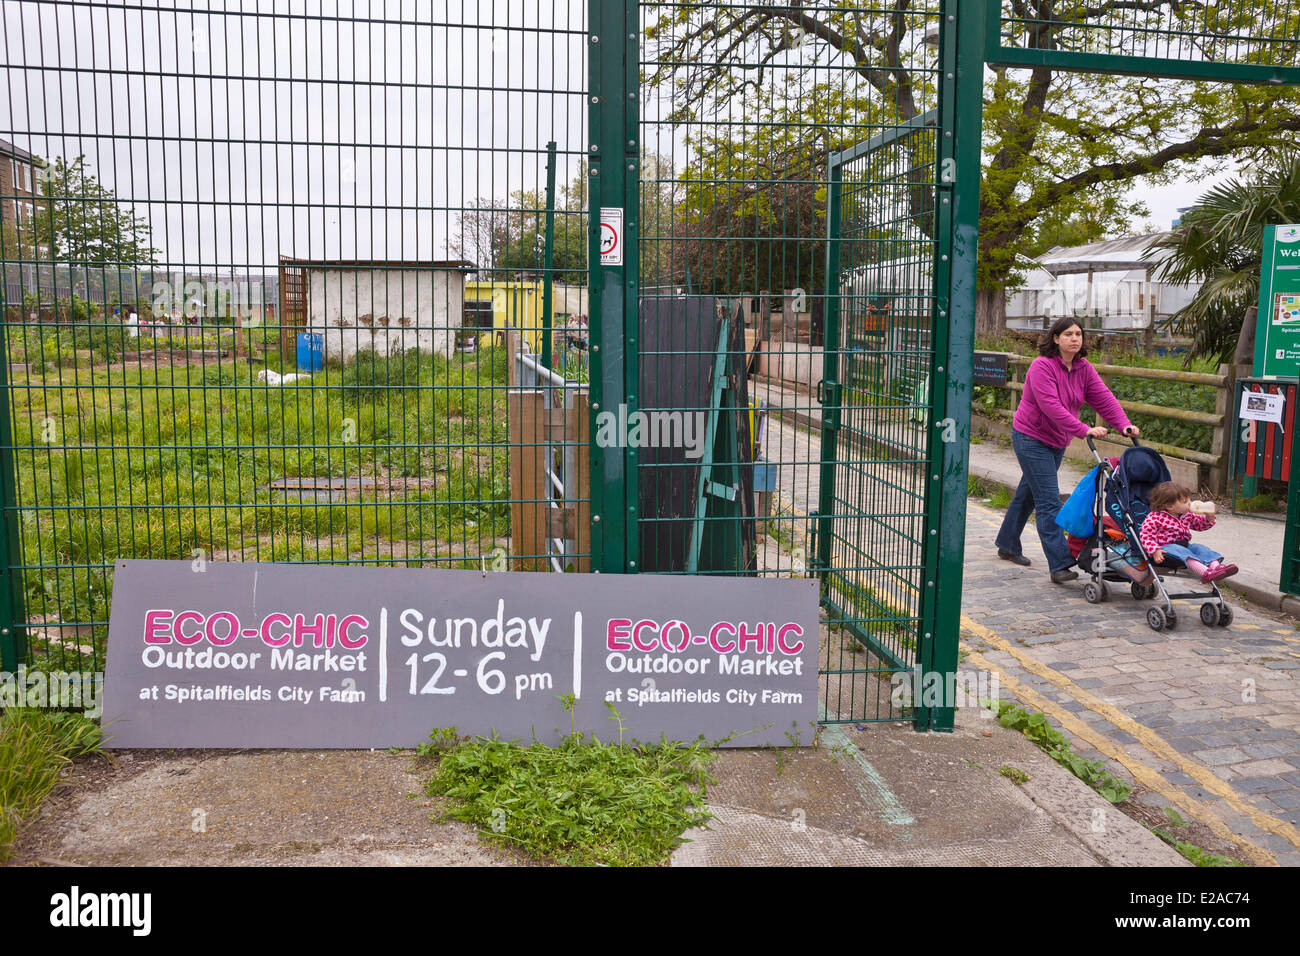 United Kingdown, London, East End district, Brick Lane, Spitalfields City Farm - Stock Image